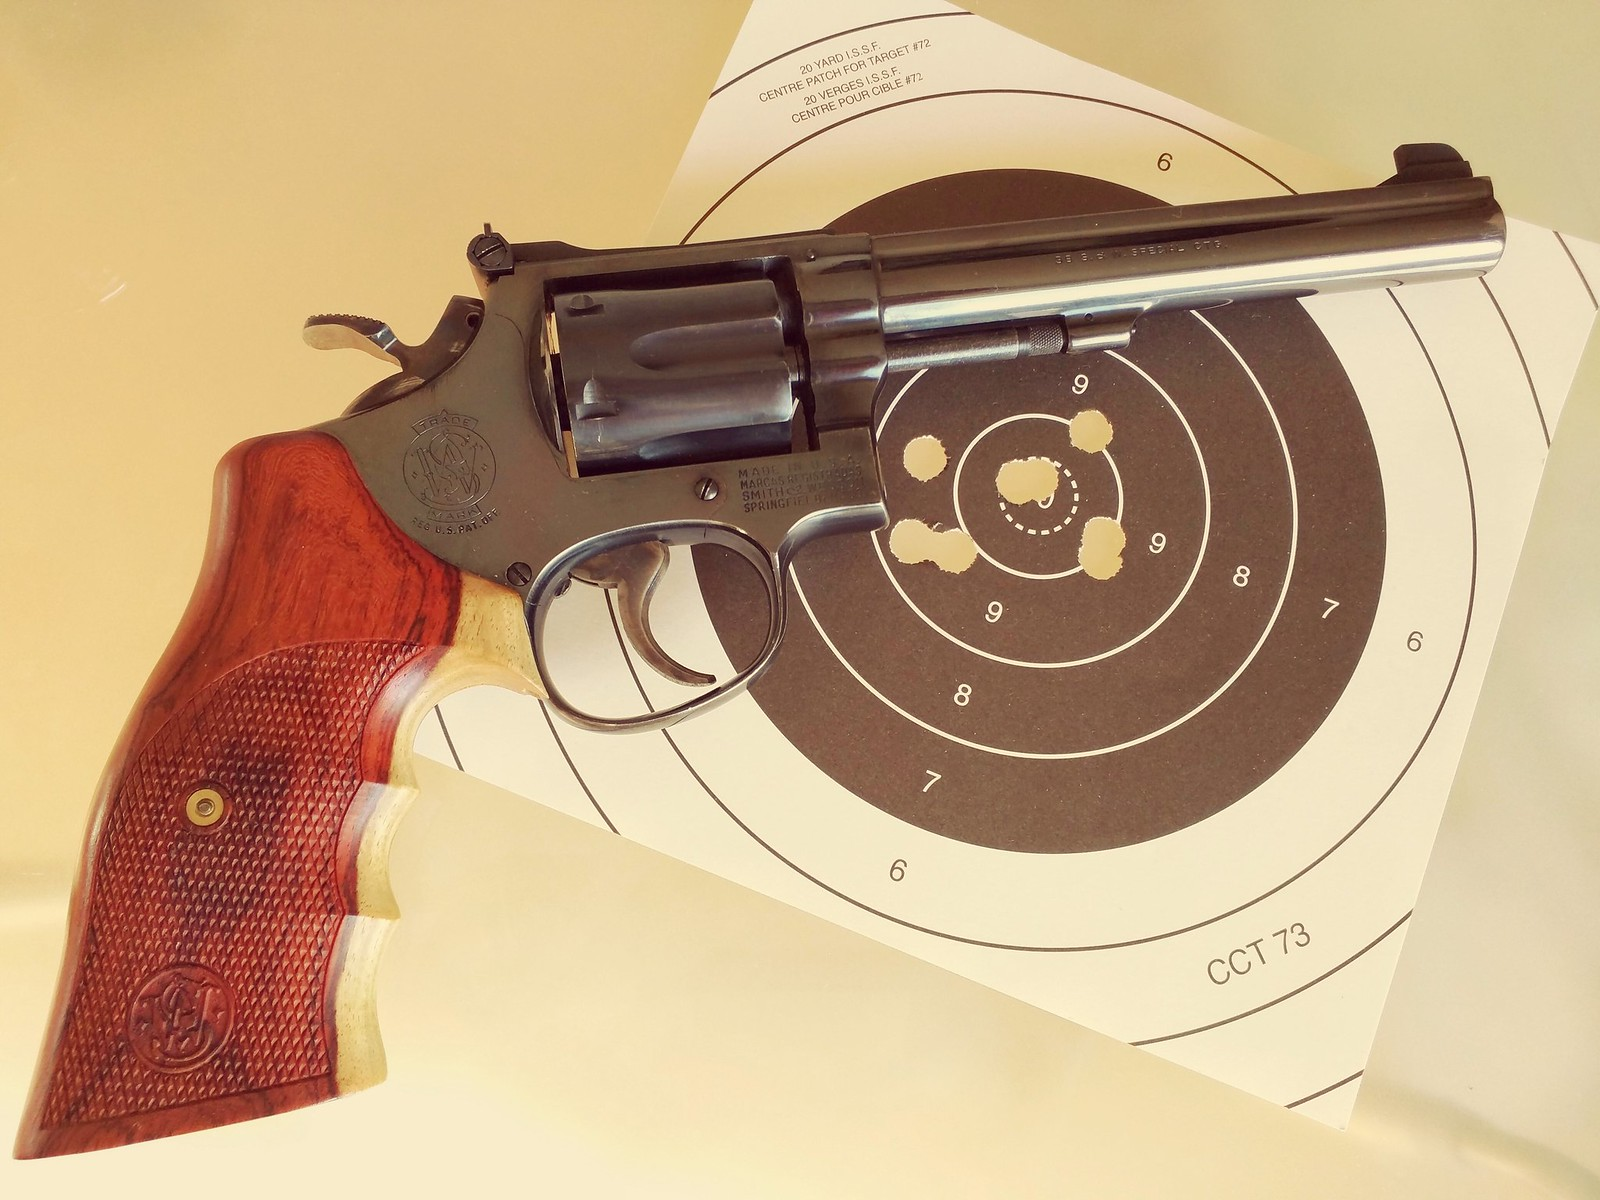 Show Me Your Bullseye Pistols - Page 6 26414237711_1ddb6a5d86_h